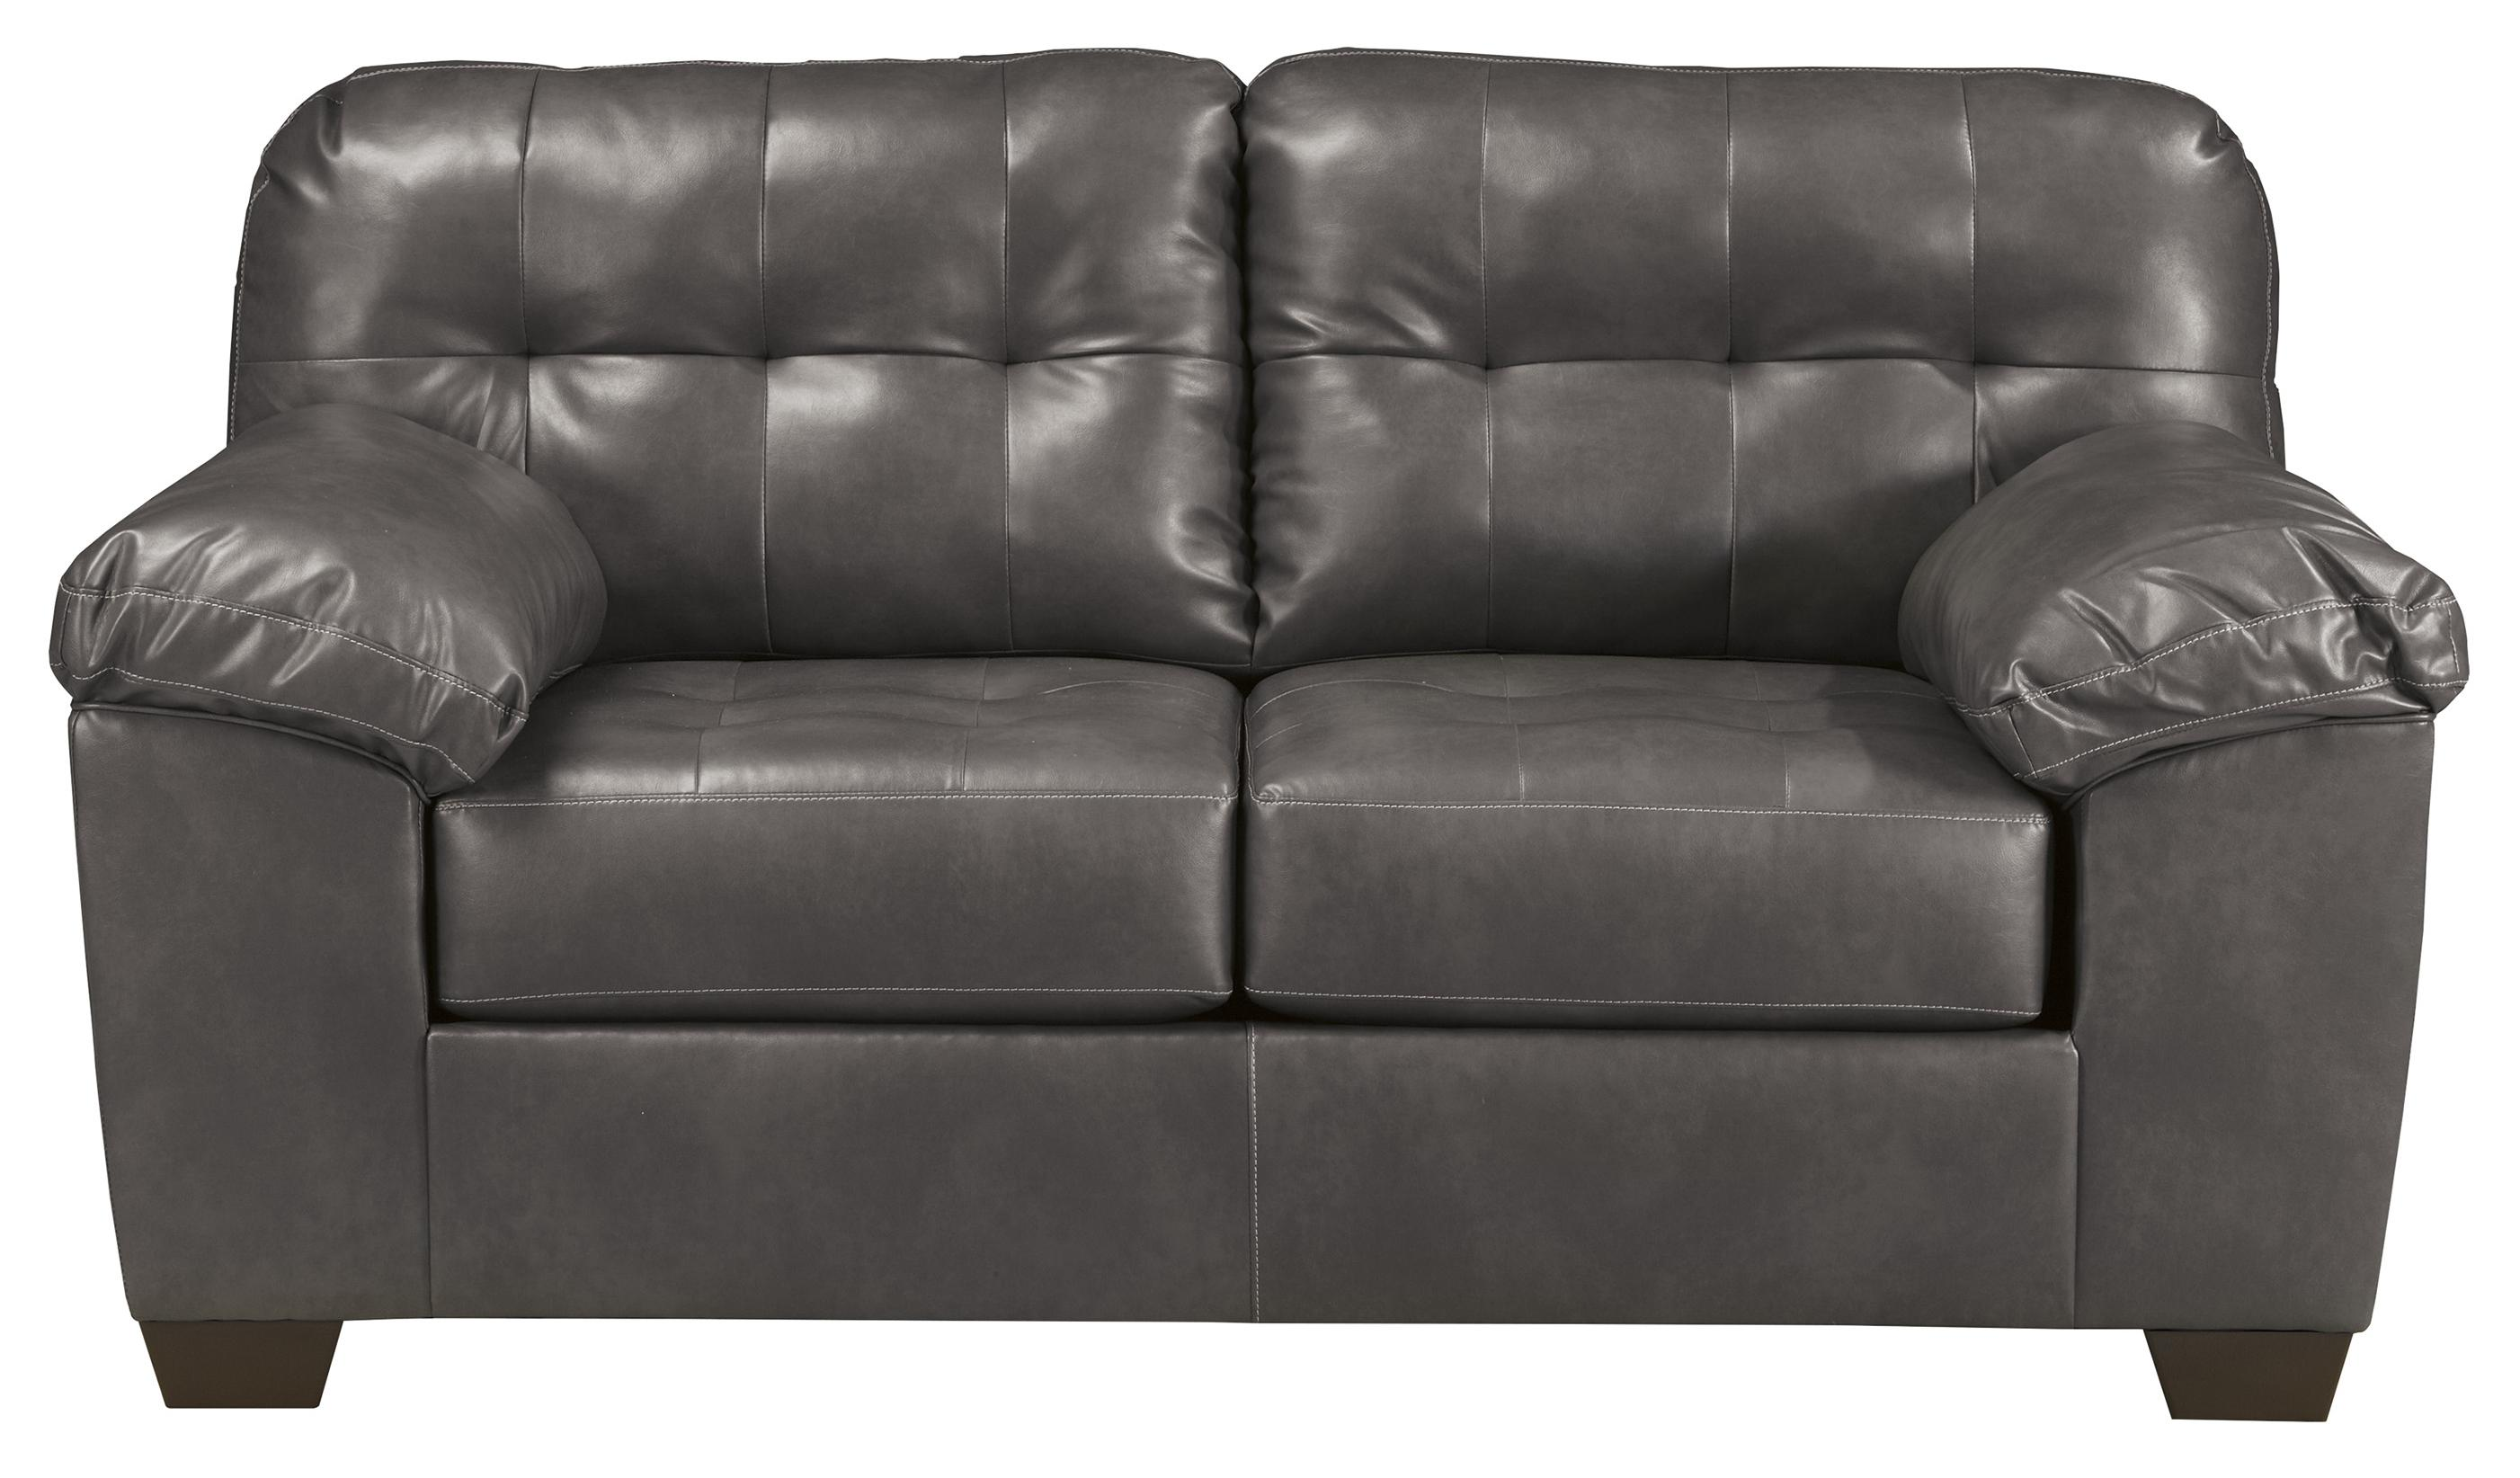 Signature Design by Ashley Alliston DuraBlend® - Gray Loveseat - Item Number: 2010235